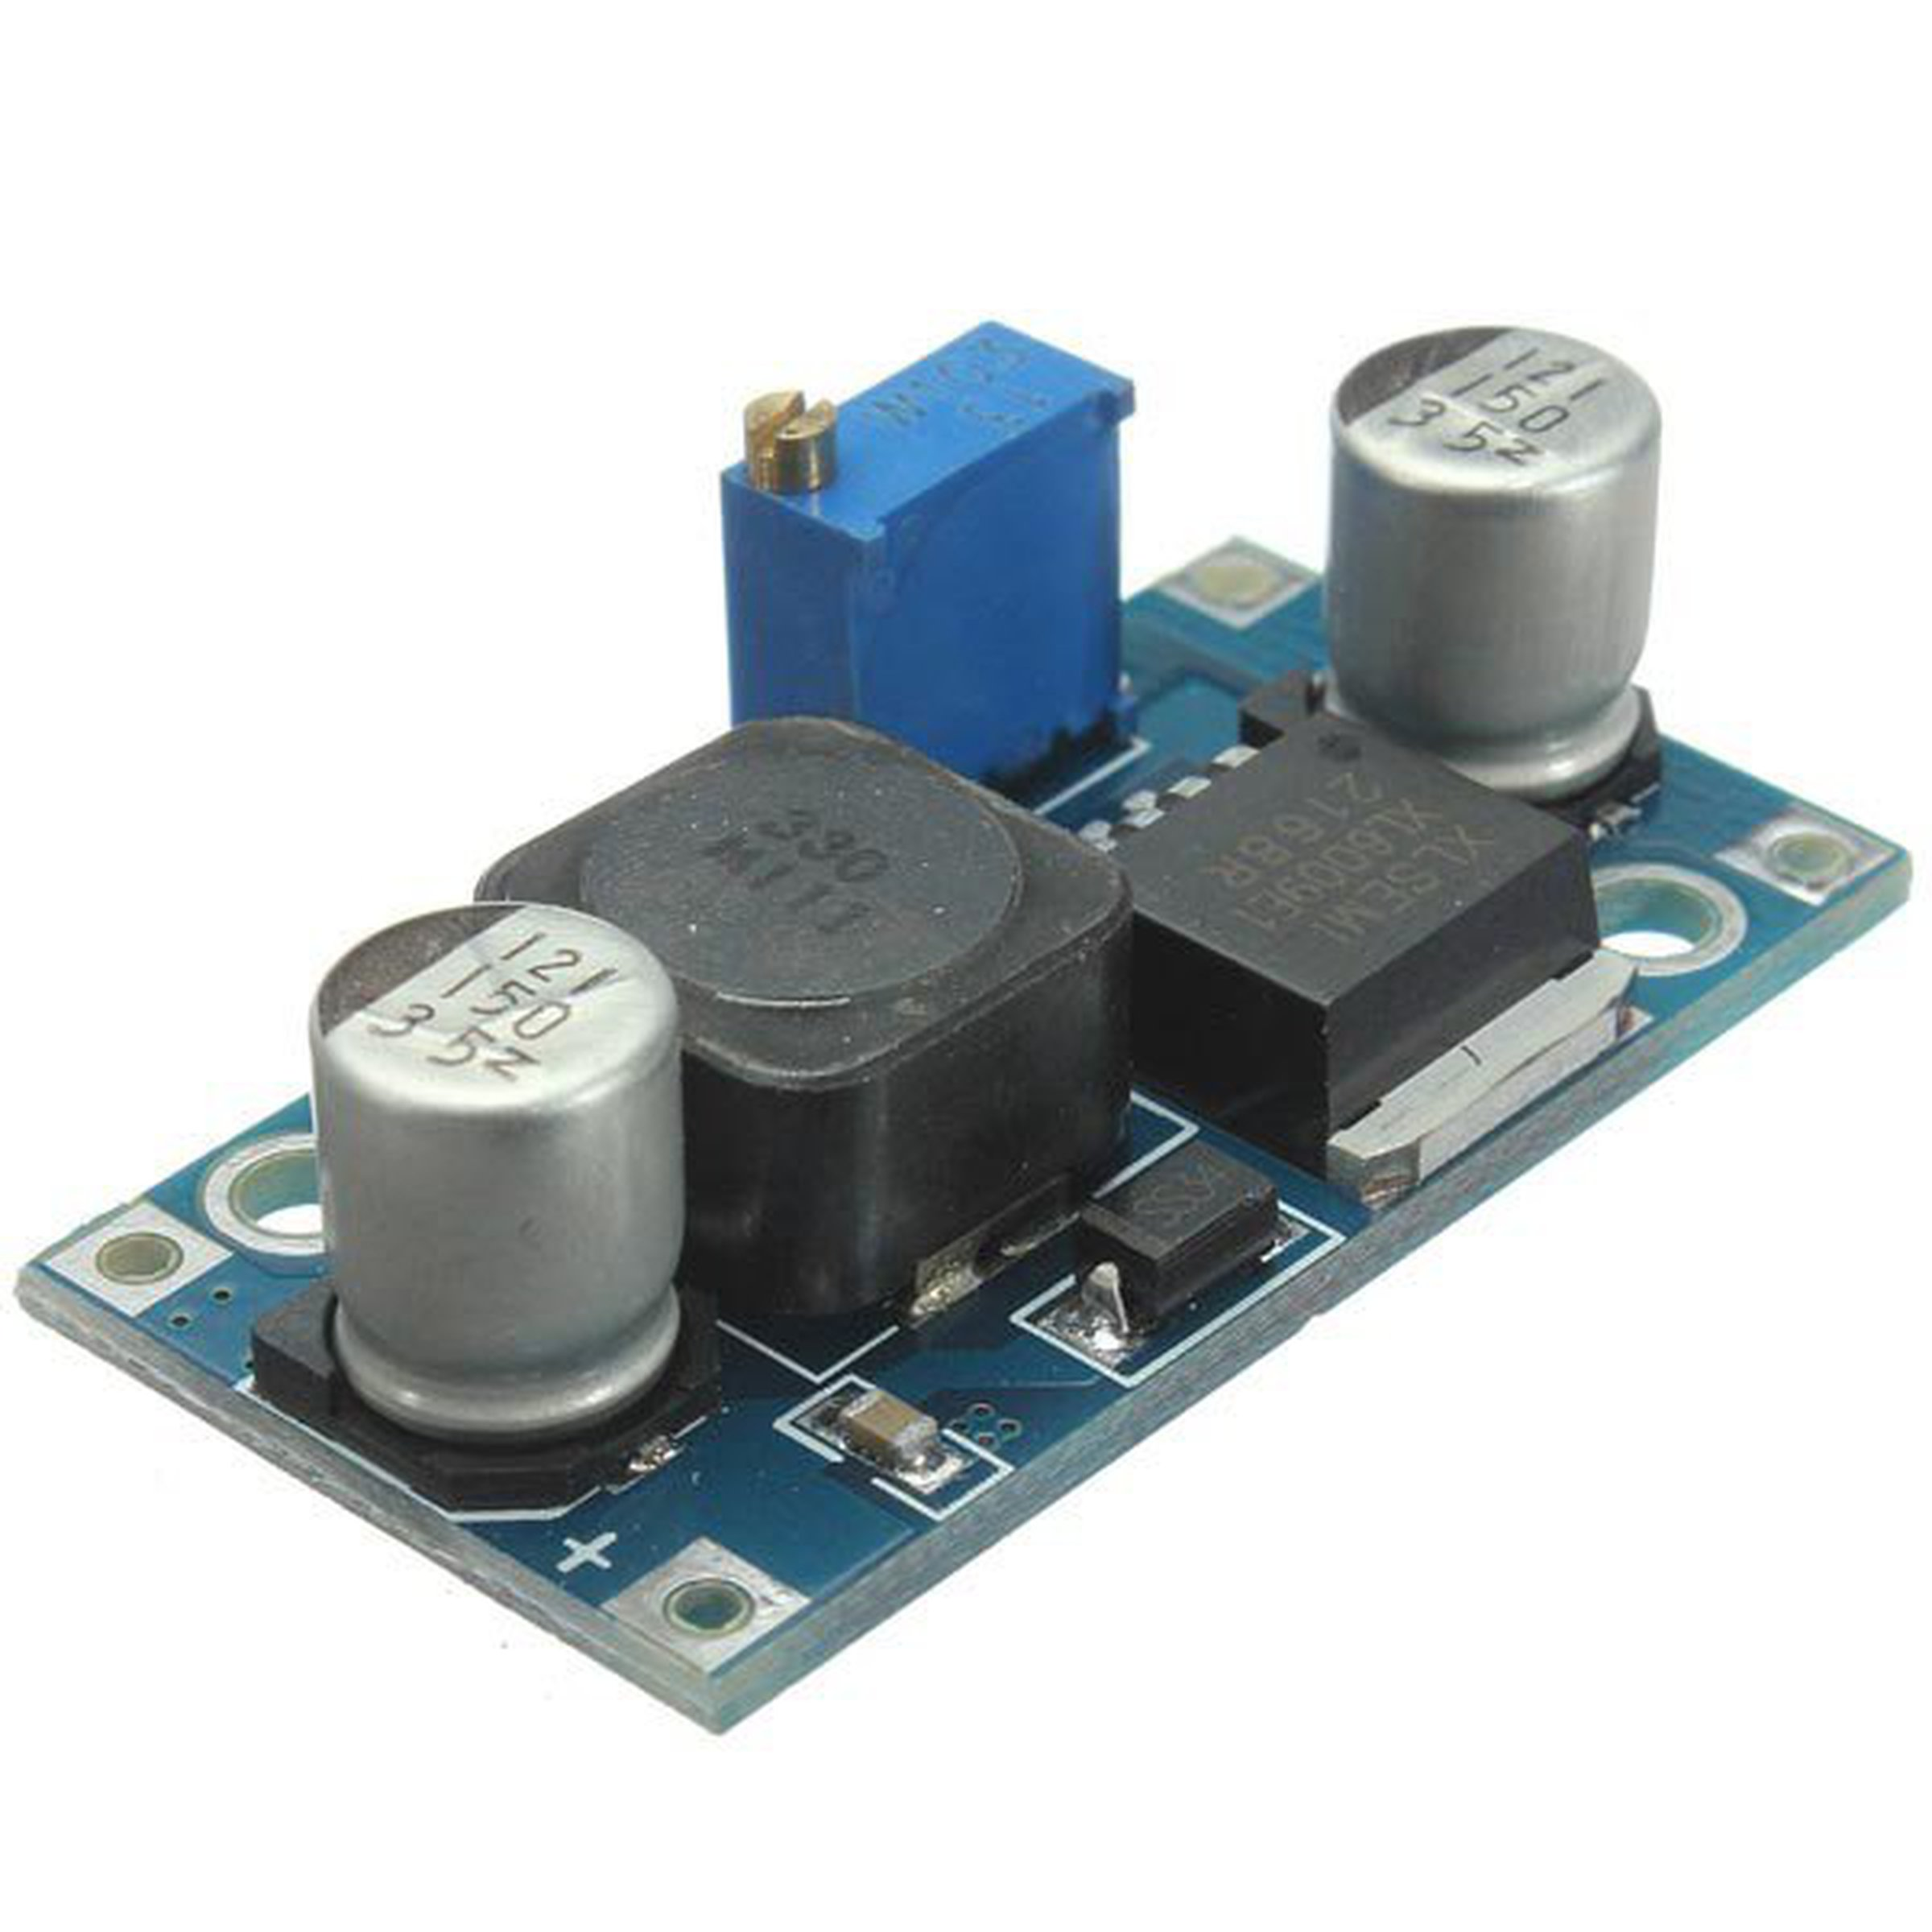 Adjustable Step Up Power Supply From Mmm999 On Tindie Xl6009 Dc To 4a 1